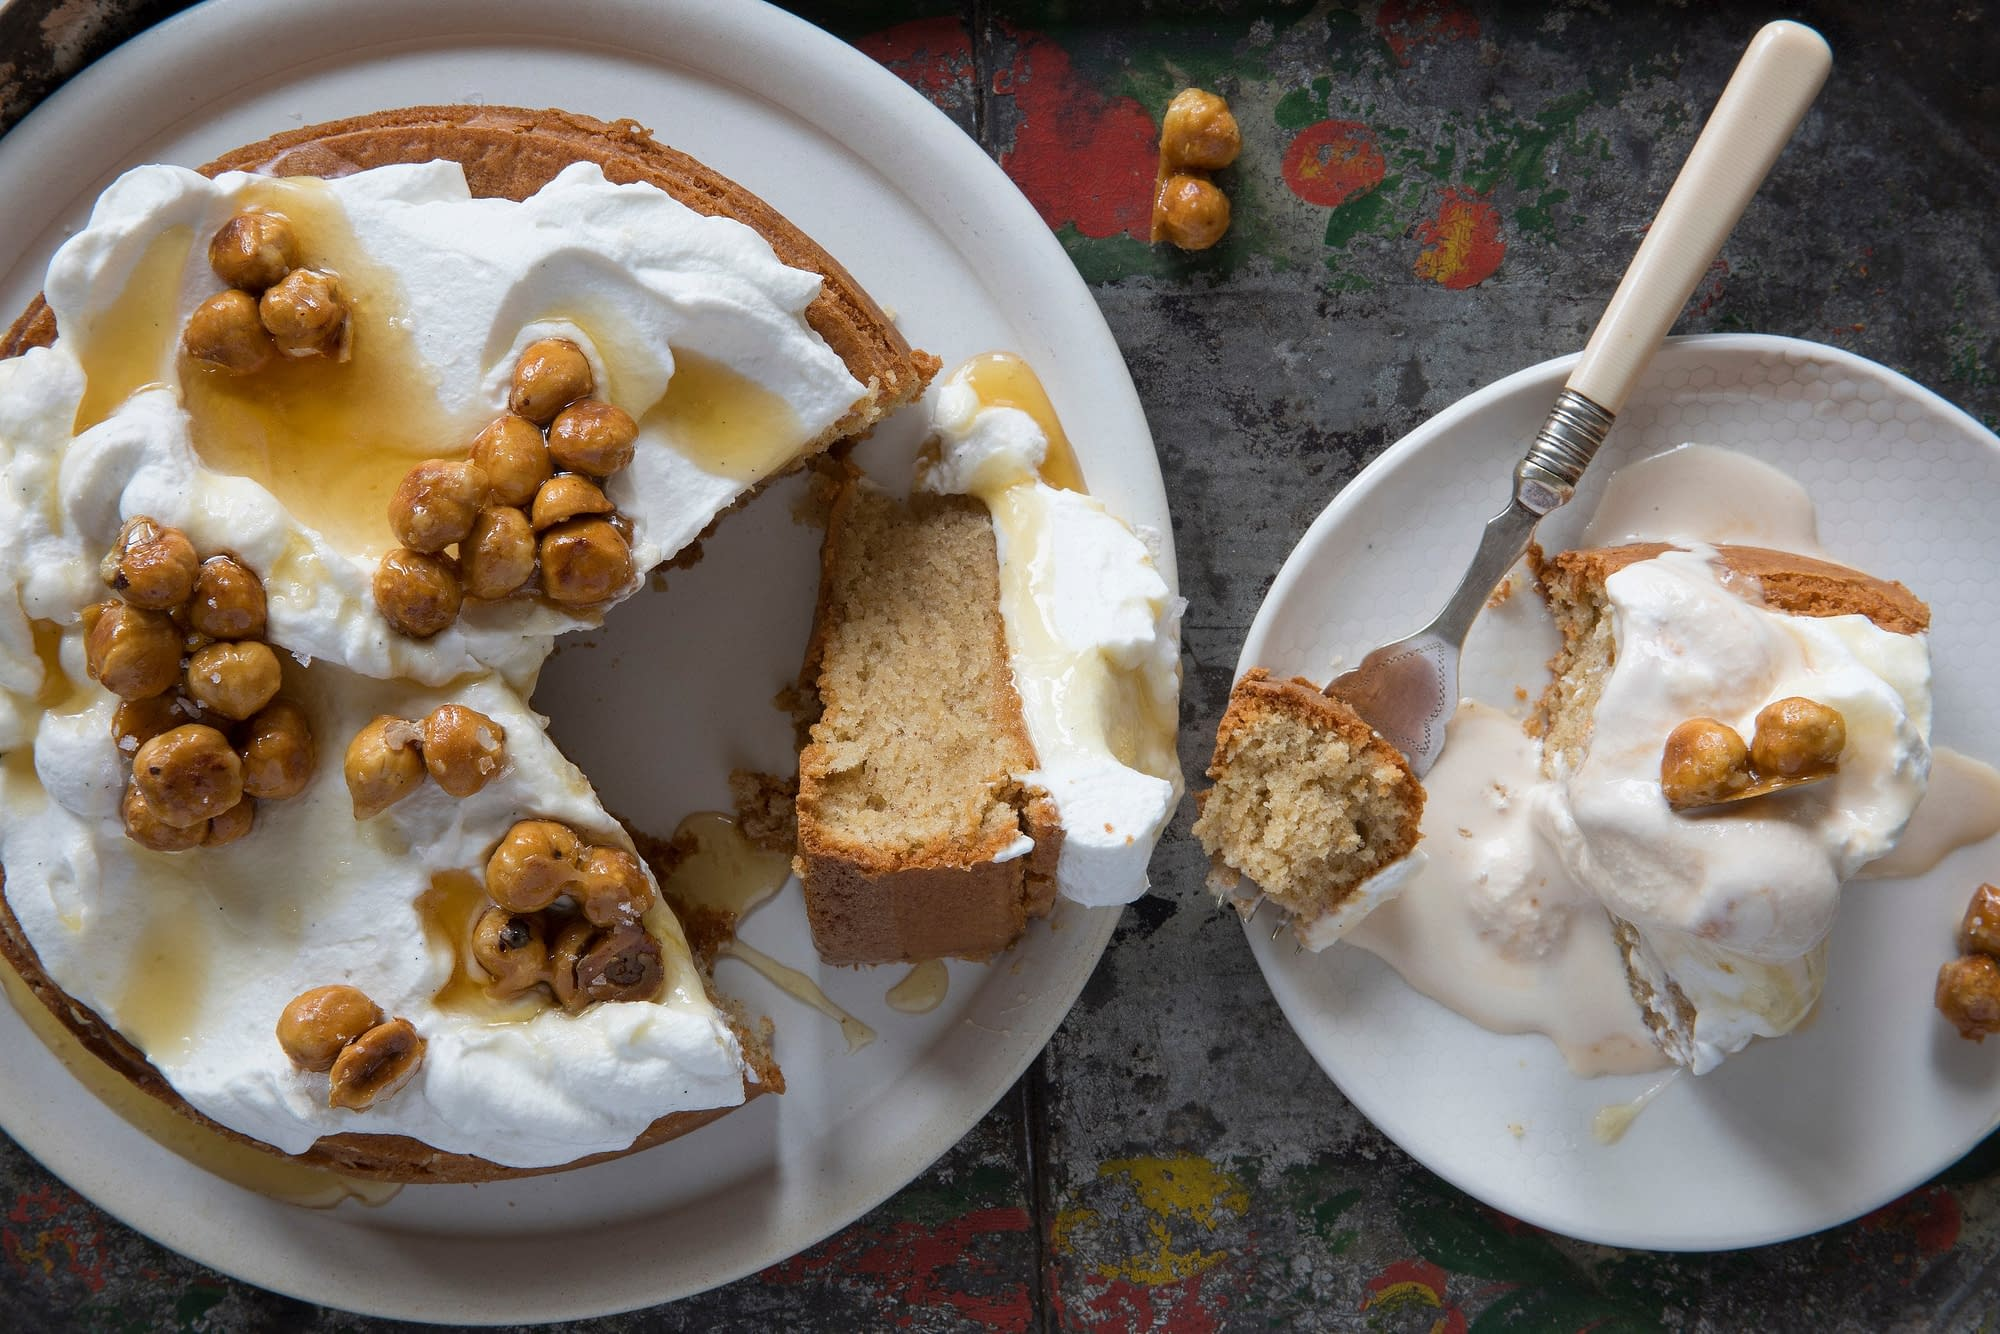 Almond hazelnut cake served on white plates from Boqueria Spanish restaurant and tapas bar in Washington DC and New York City.